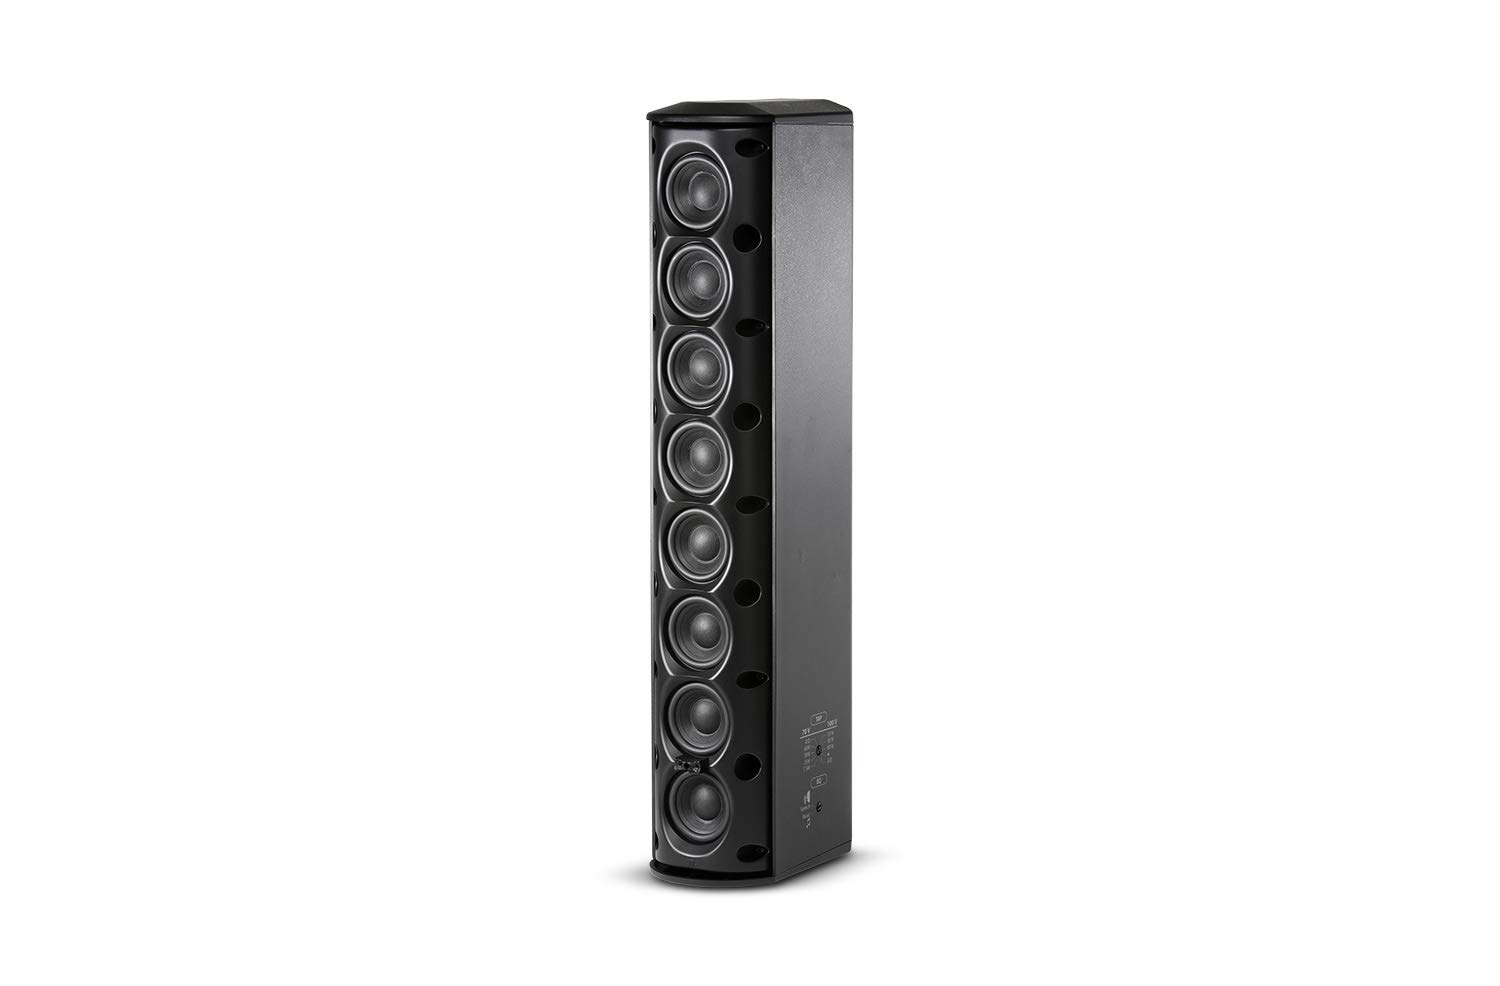 JBL Professional CBT 50LA-1 Compact Line Array Column Speaker with 8 2-Inch Drivers, 20-Inches Tall, Black